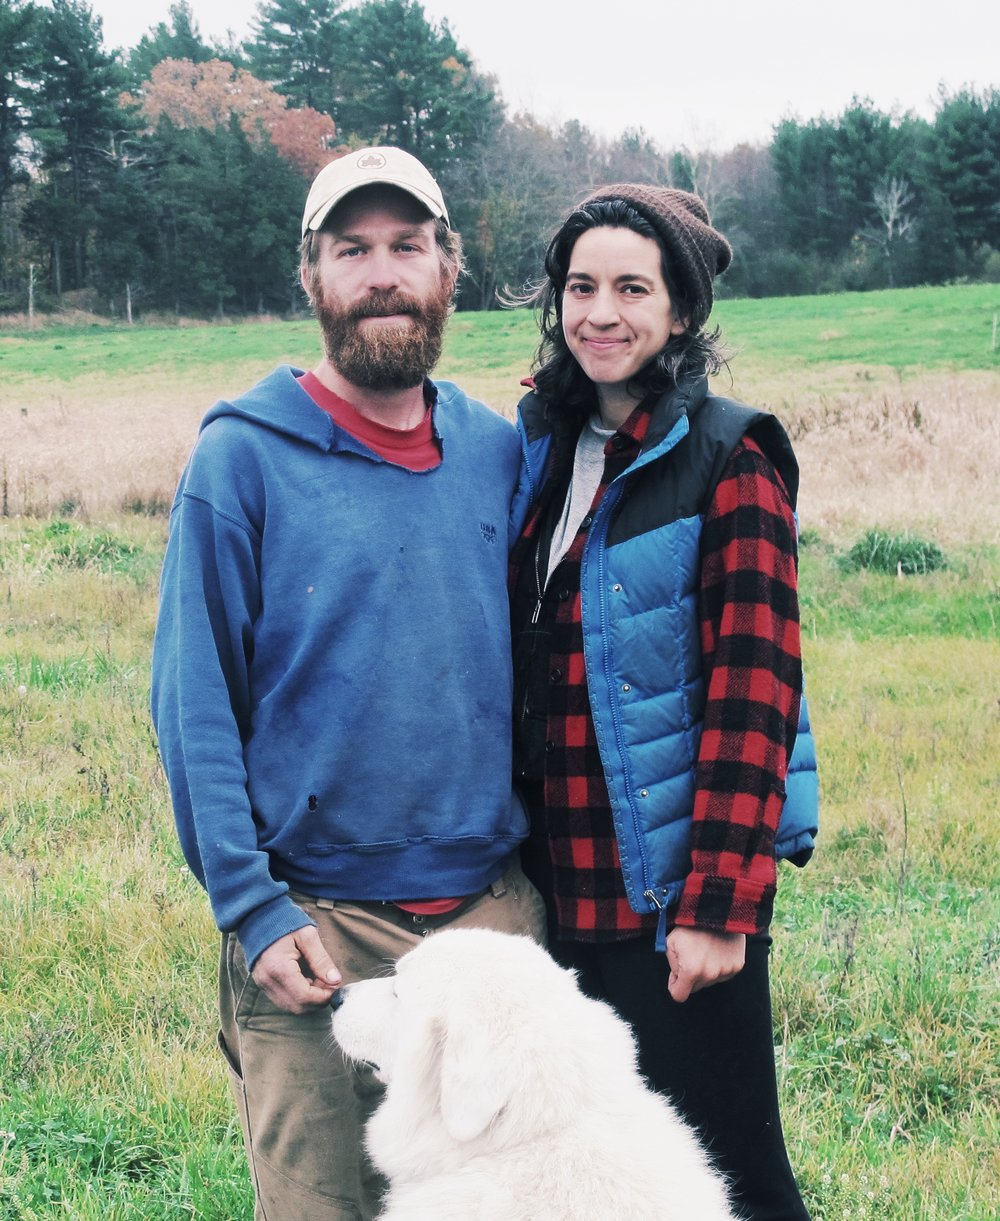 - The farm is run jointly by Chuck Currie and Marie Kaziunas and has been built with the help of many incredible farmers over the years. Chuck and Marie met at a winter farmers' market seven years ago and a year later Chuck started Freedom Food Farm. After years of growing the farm, both Marie and Chuck farm year-round at Freedom Food and have been dedicated to ethically growing a full-diet, four season farm to feed local communities.The name Freedom Food symbolizes our efforts to produce clean, whole food free of toxins, chemicals, GMOs, unethically produced amendments and other inputs that have harmful environmental & social costs. It is also about the importance of land access in this country for first generation farmers and supporting food produced with good farm labor conditions locally. We deeply believe that regenerative agriculture, growing food and well stewarded farmland in this country is essential and it's time we all make decisions that consider what resources we are leaving for future generations.By supporting farmers like us you have the ability to help change what type of agriculture is possible, teach a new generation of farmers and in partnership we can create a thriving farm that nurtures the land and produces good food for many years to come.